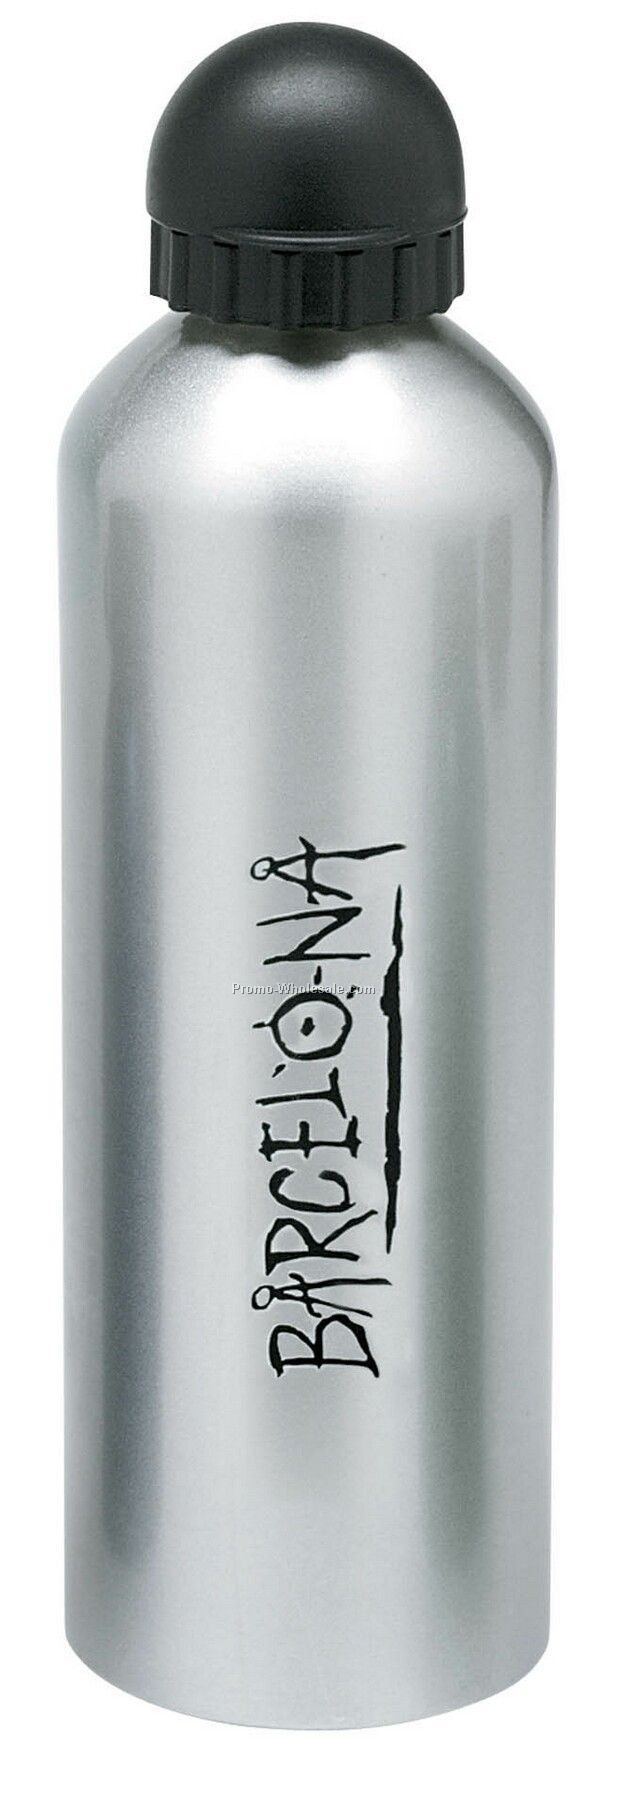 Giftcor 1 Liter Blue Aluminum Sport Flask II W/ Dome Sports Top